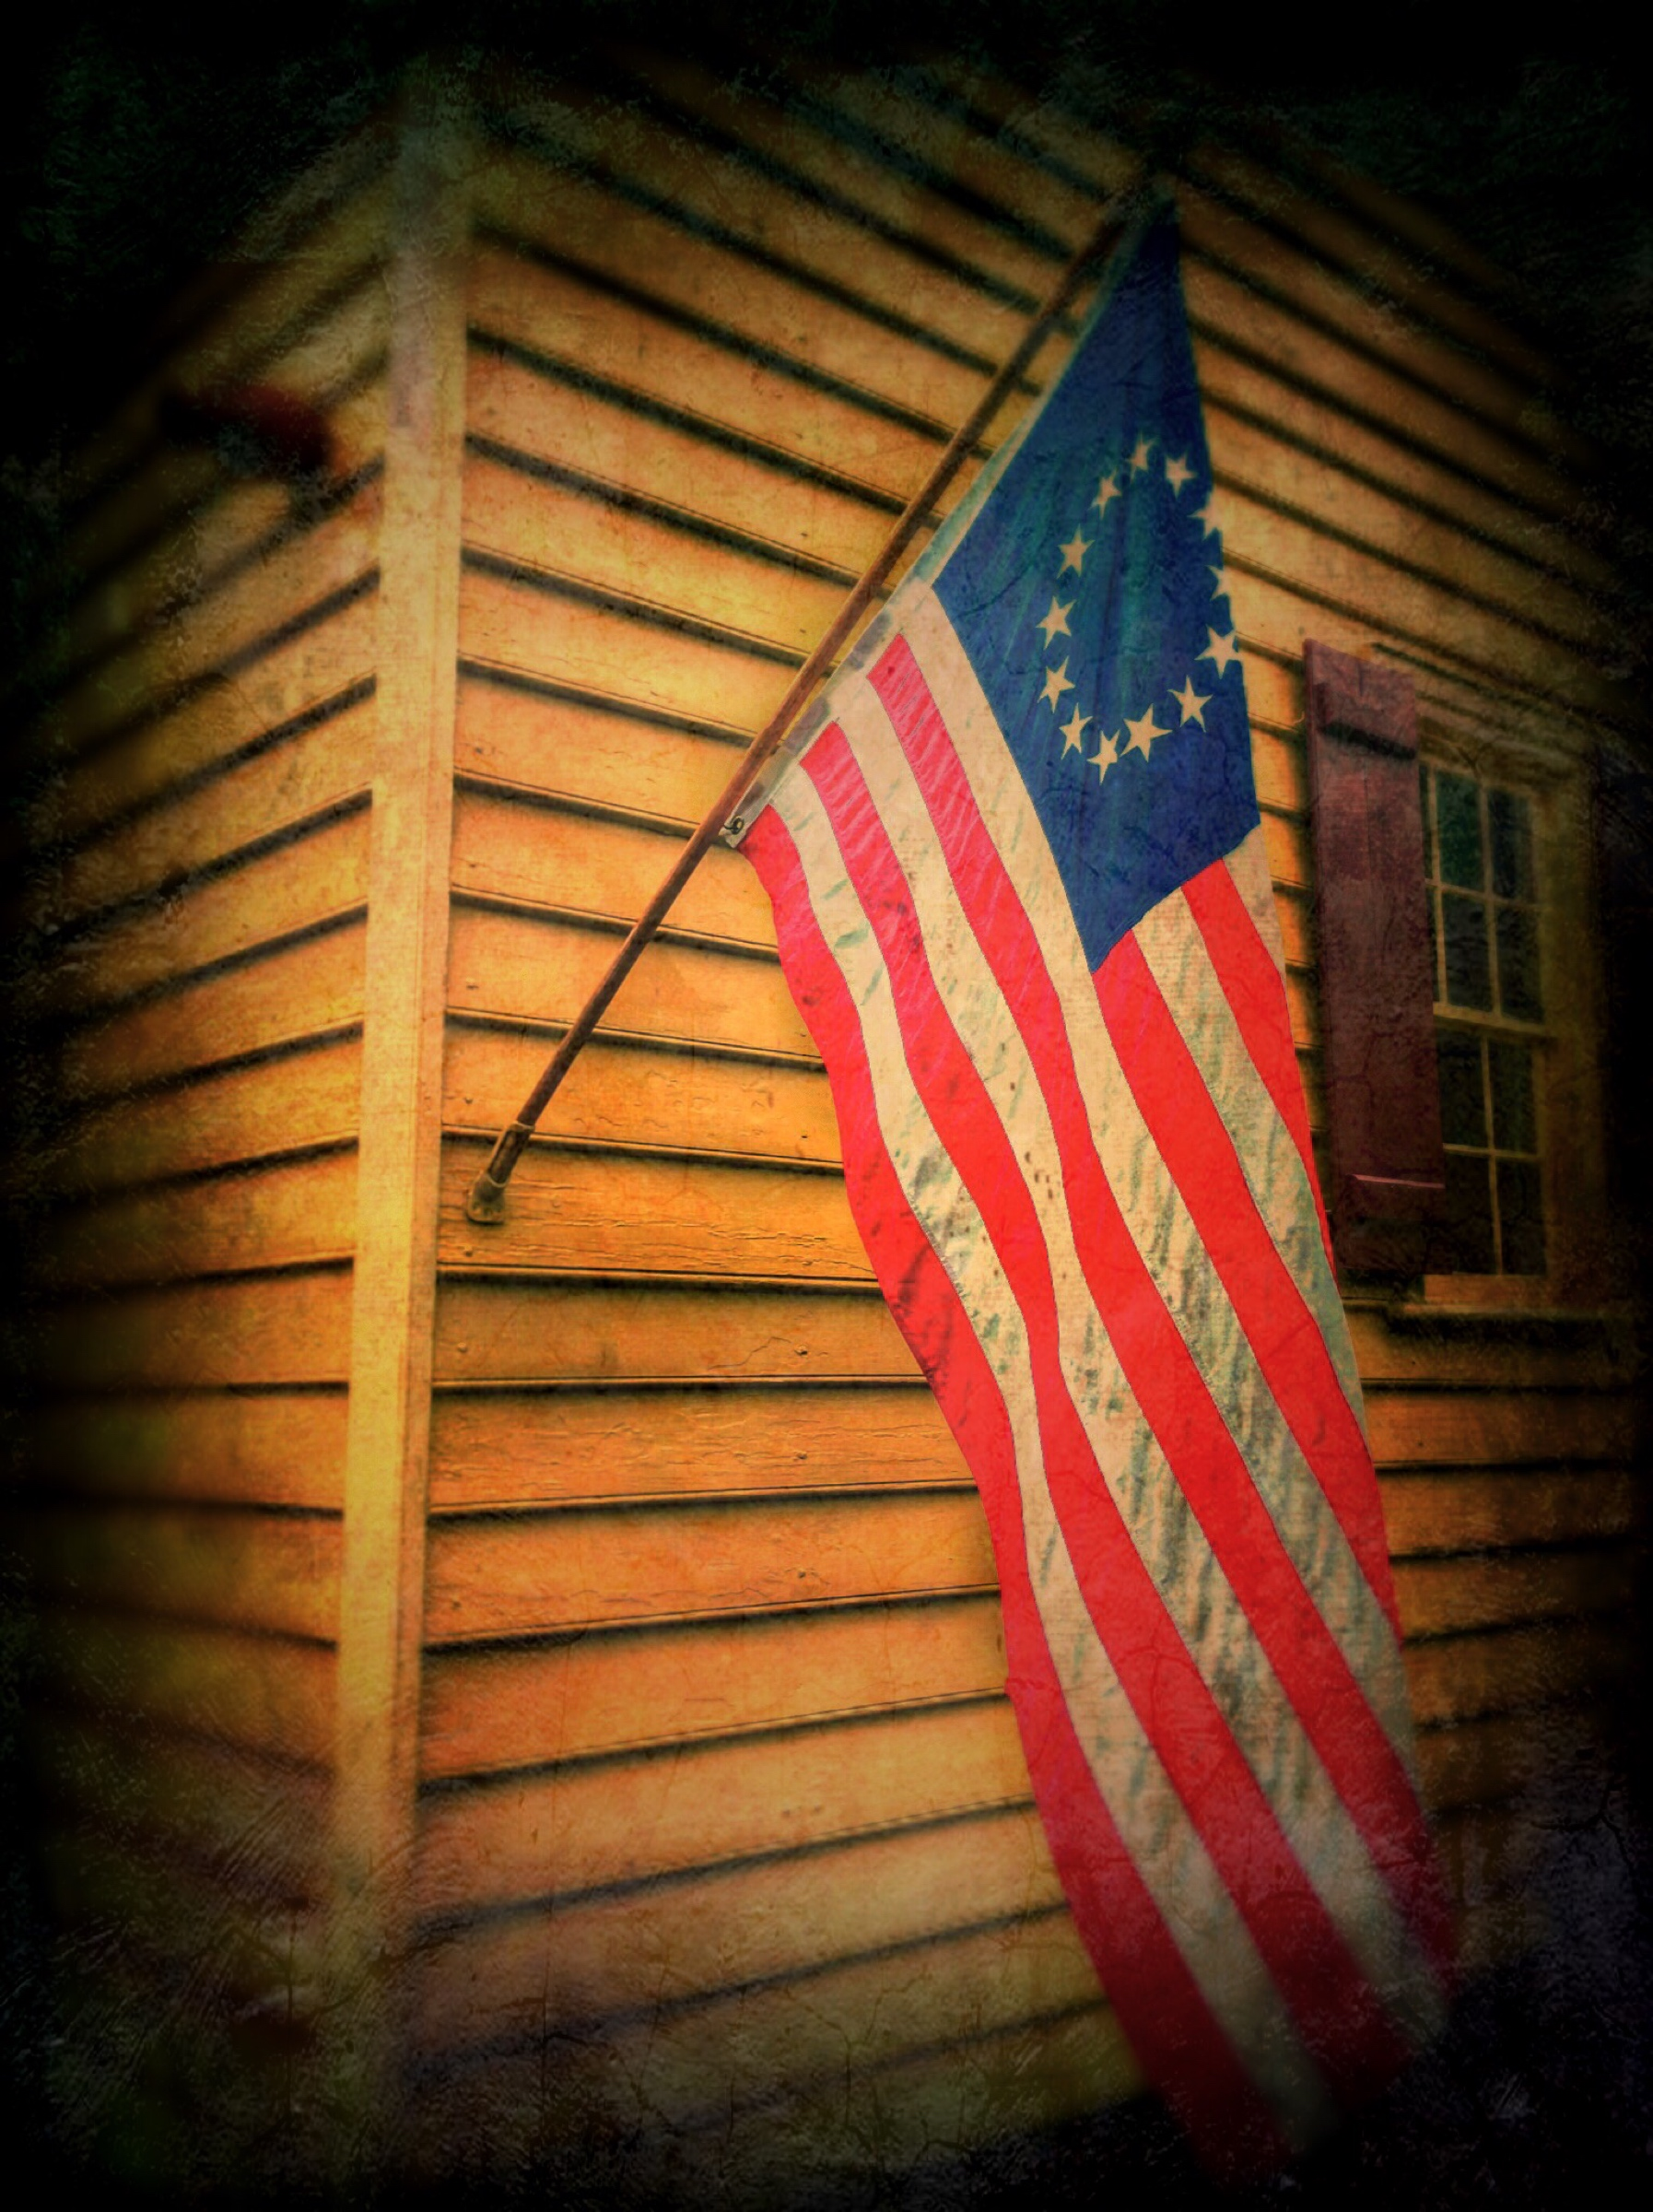 Old American Flag hanging on side of old clapboard building